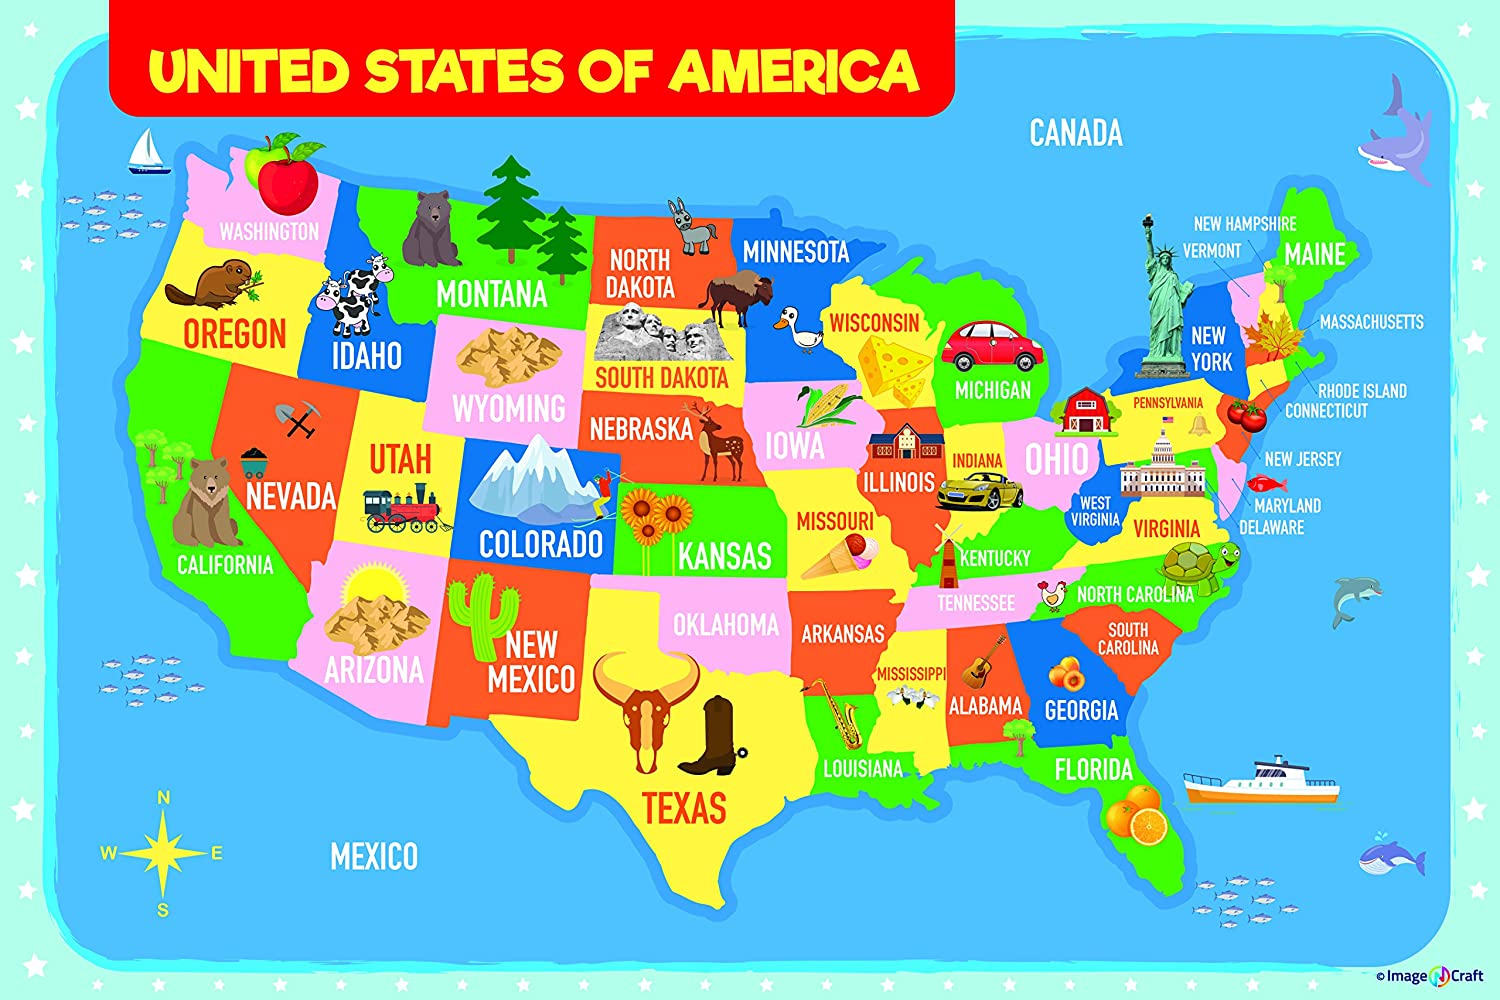 Map Of Canada For Students.Usa Map Poster For Kids 24 X 36 Inch By Imagencraft With Colorful Design And Images Perfect For Kids Students Parents Teachers And More 24x36